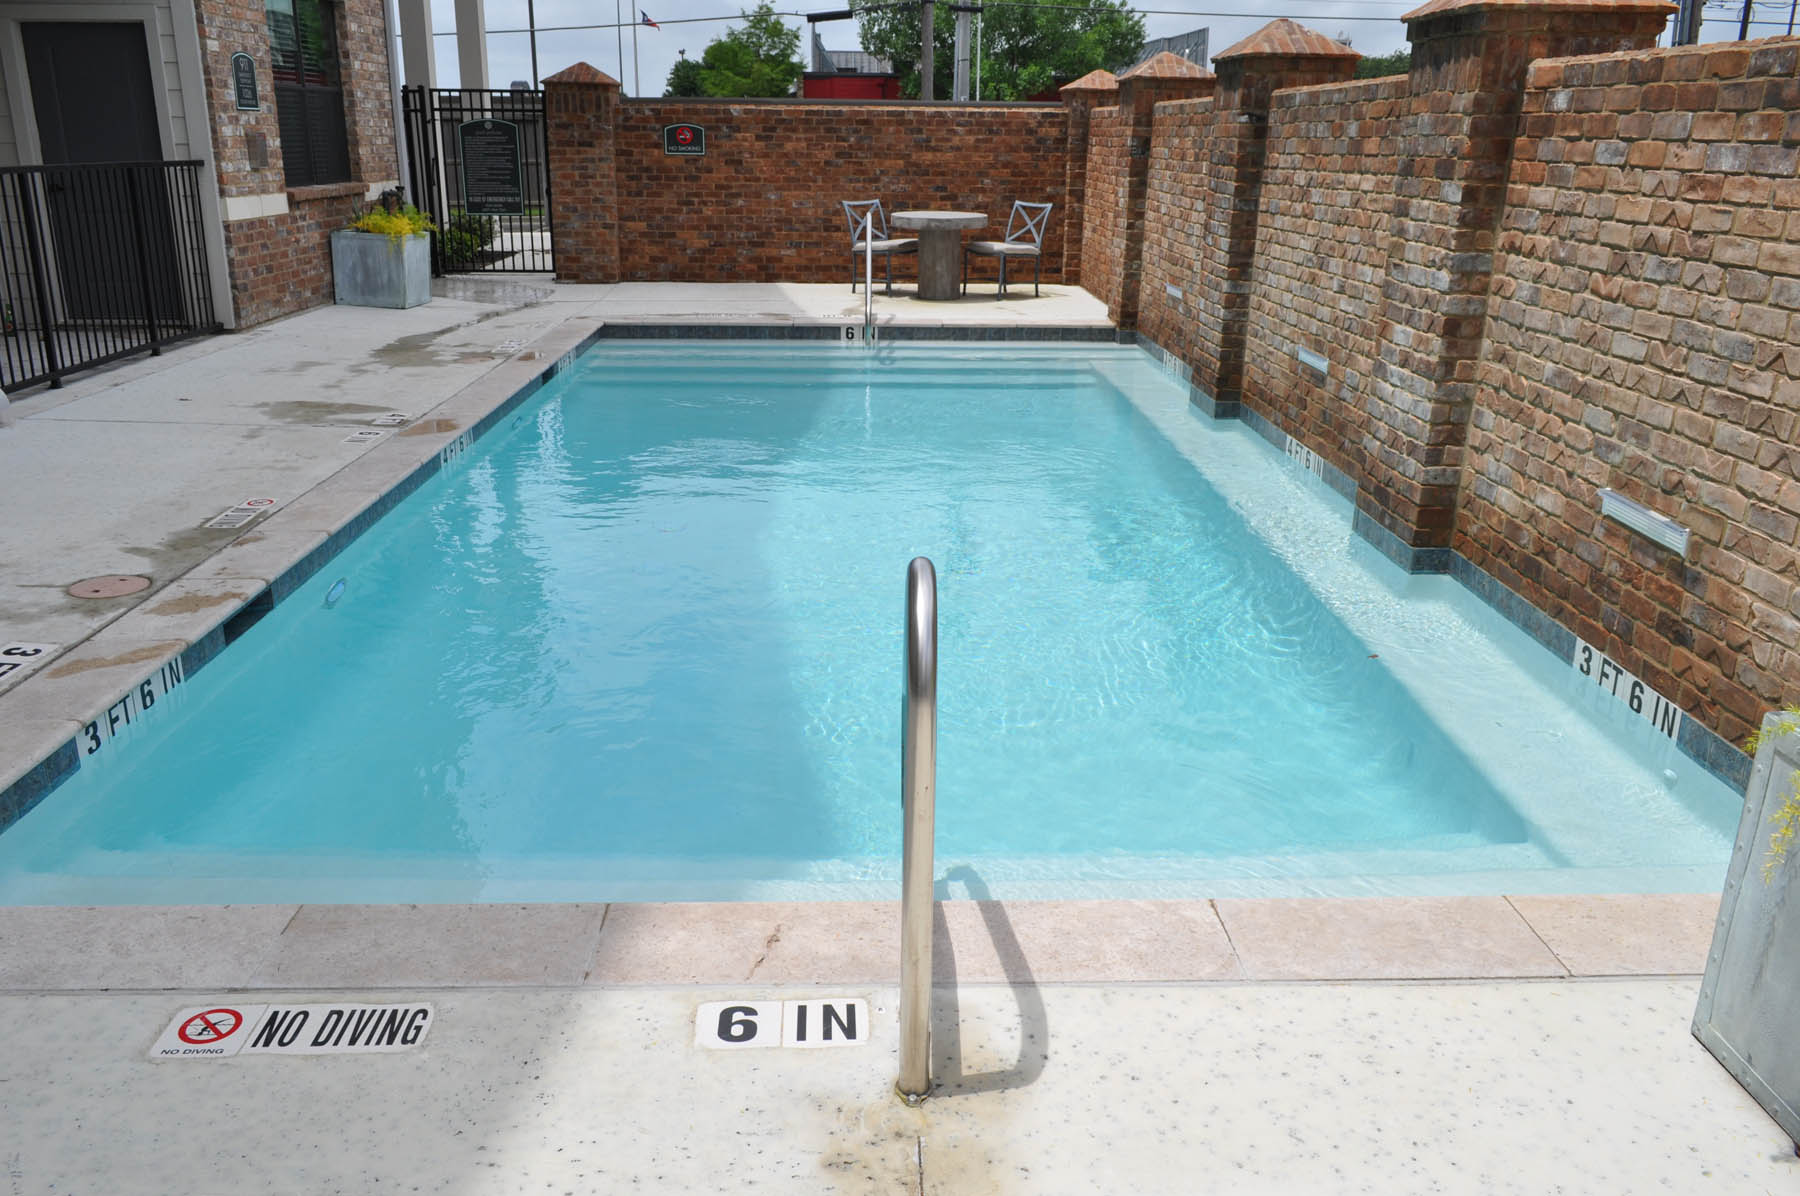 Bryan college station commercial pools photo gallery - Swimming pools in college station tx ...